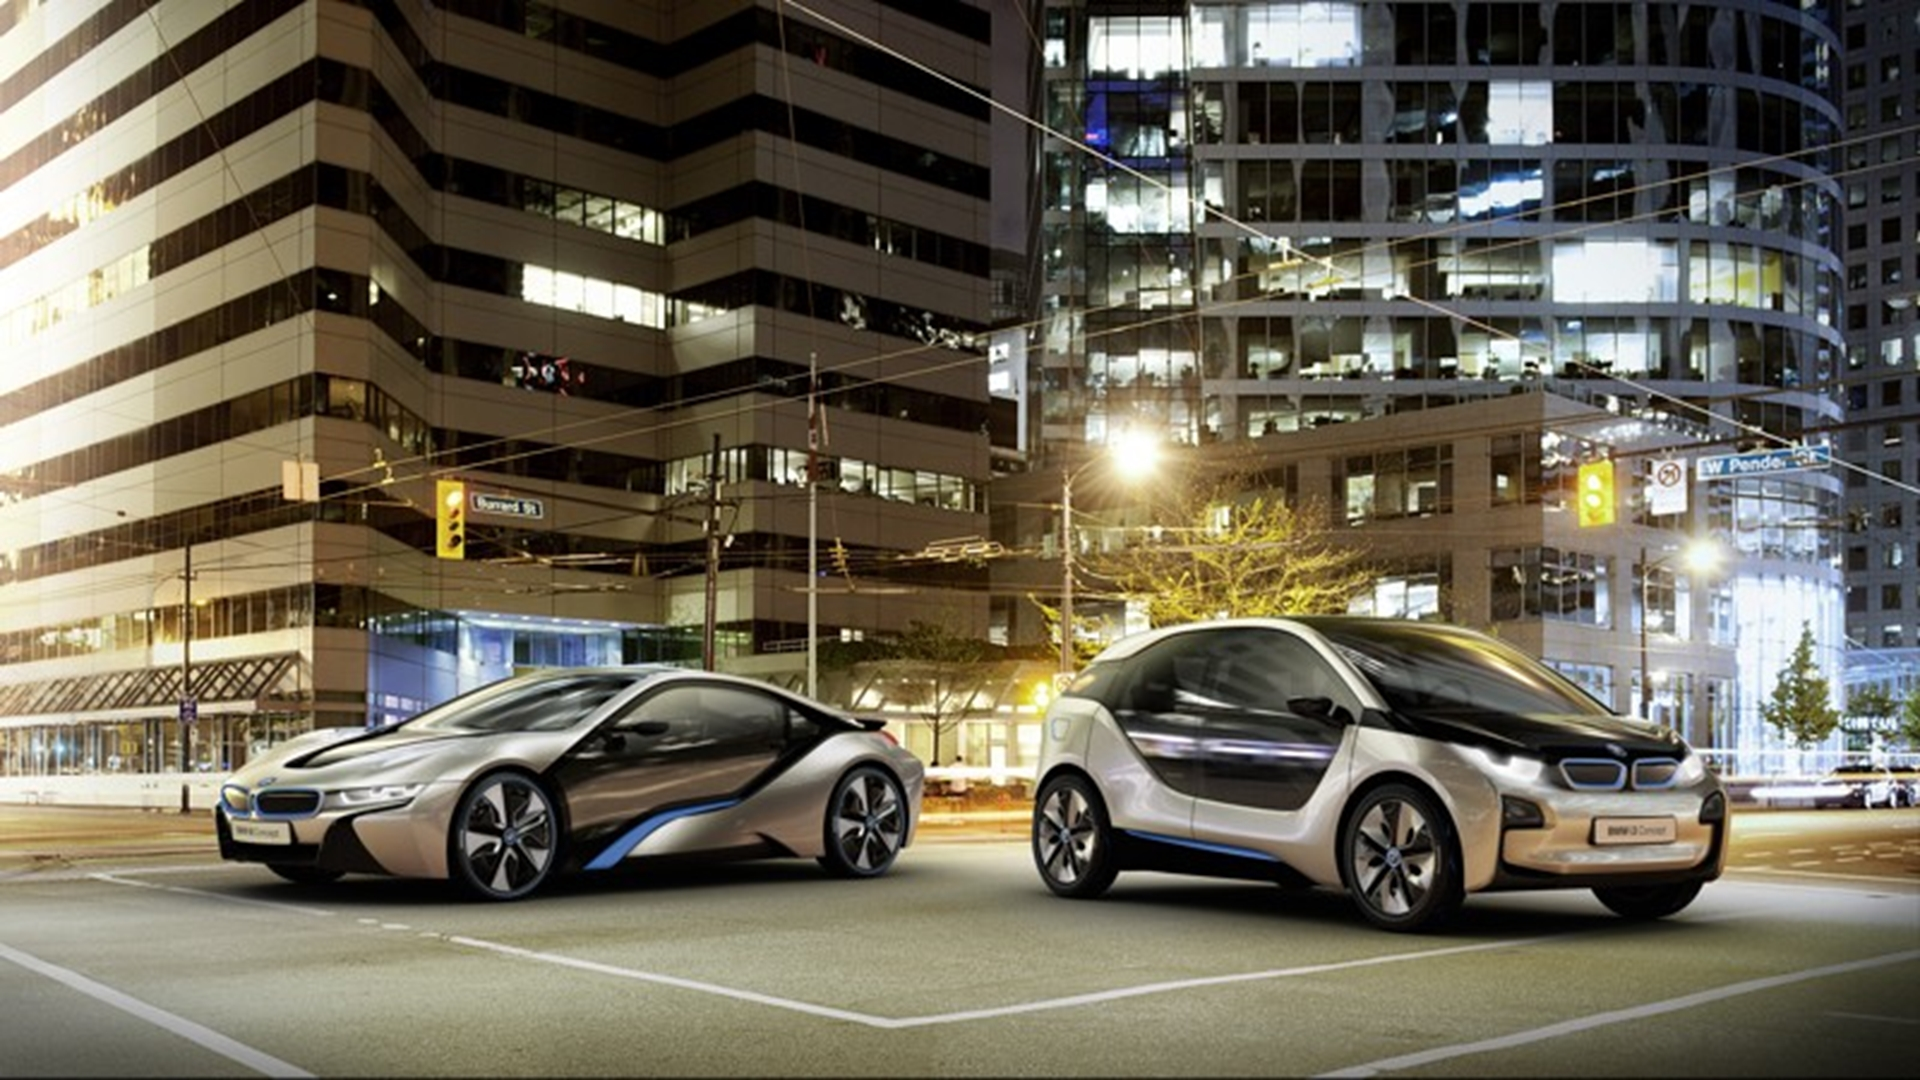 Bmw I3 Concept And Bmw I8 Concept At The North American